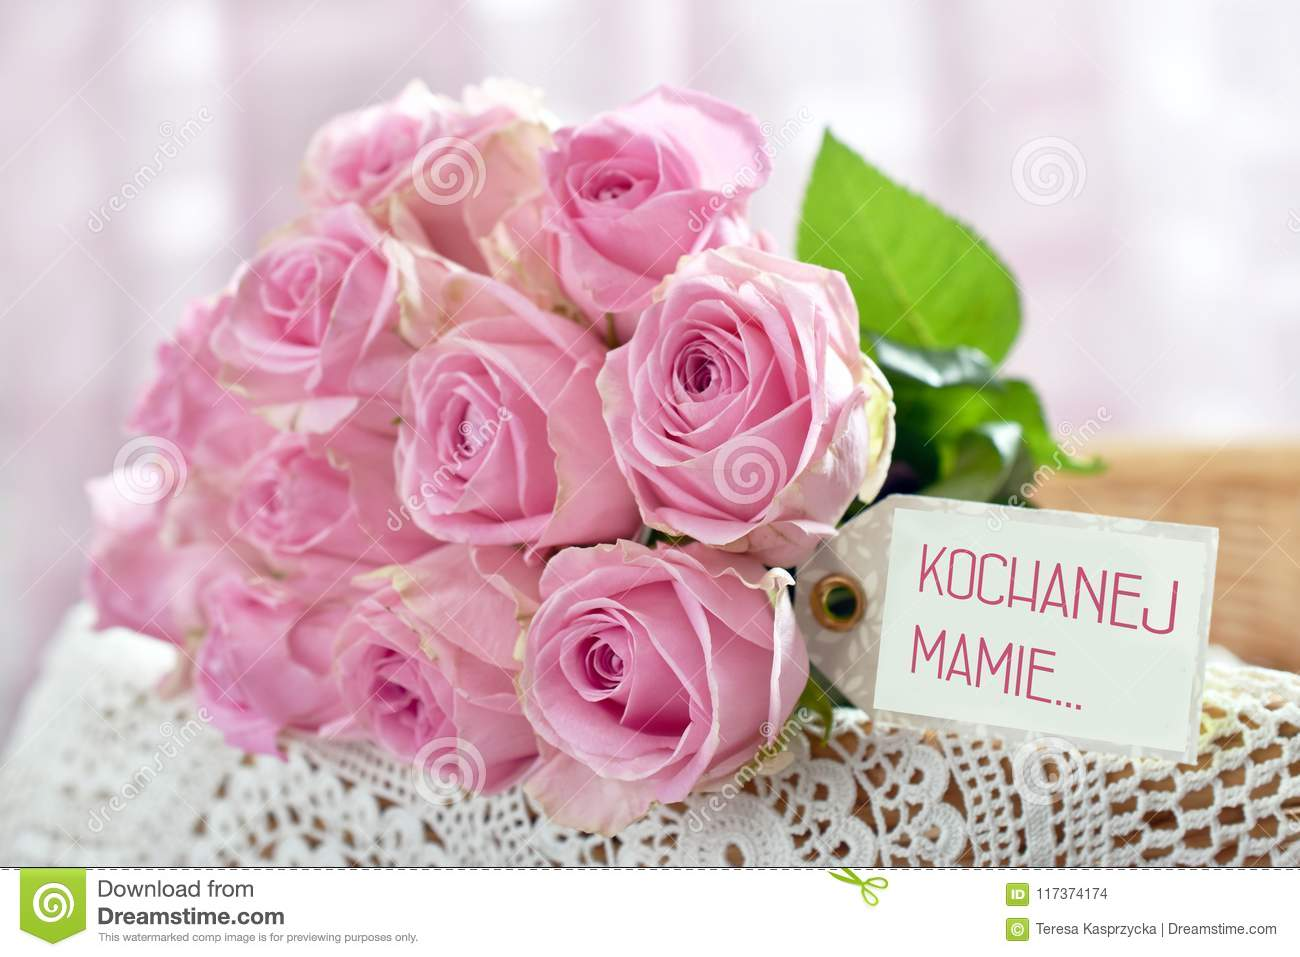 Bunch Of Pink Roses For Mother Day Day In Poland With Text For